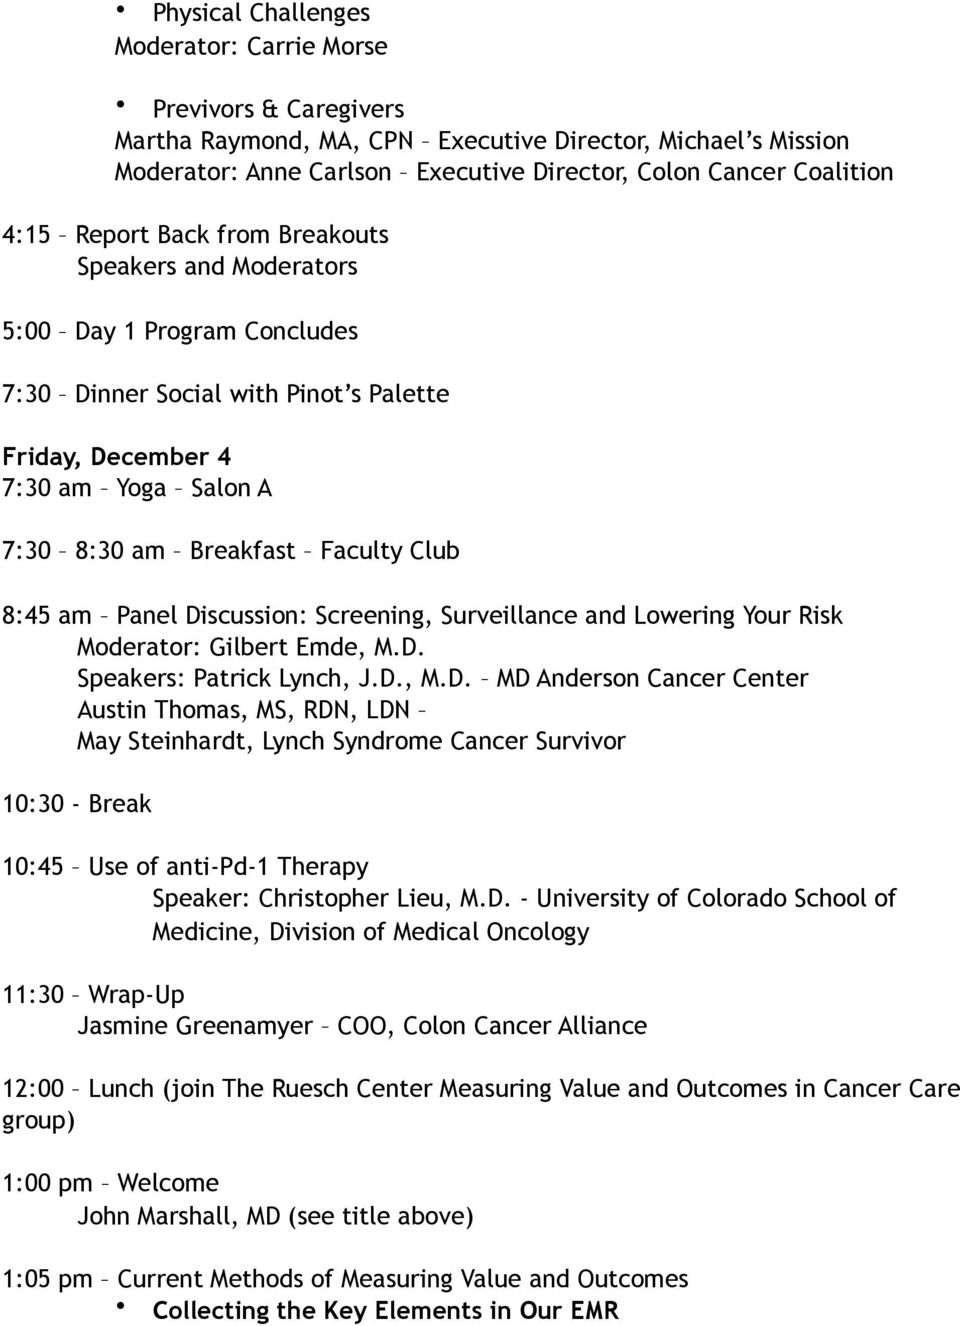 Club 8:45 am Panel Discussion: Screening, Surveillance and Lowering Your Risk Moderator: Gilbert Emde, M.D. Speakers: Patrick Lynch, J.D., M.D. MD Anderson Cancer Center Austin Thomas, MS, RDN, LDN May Steinhardt, Lynch Syndrome Cancer Survivor 10:30 - Break 10:45 Use of anti-pd-1 Therapy Speaker: Christopher Lieu, M.